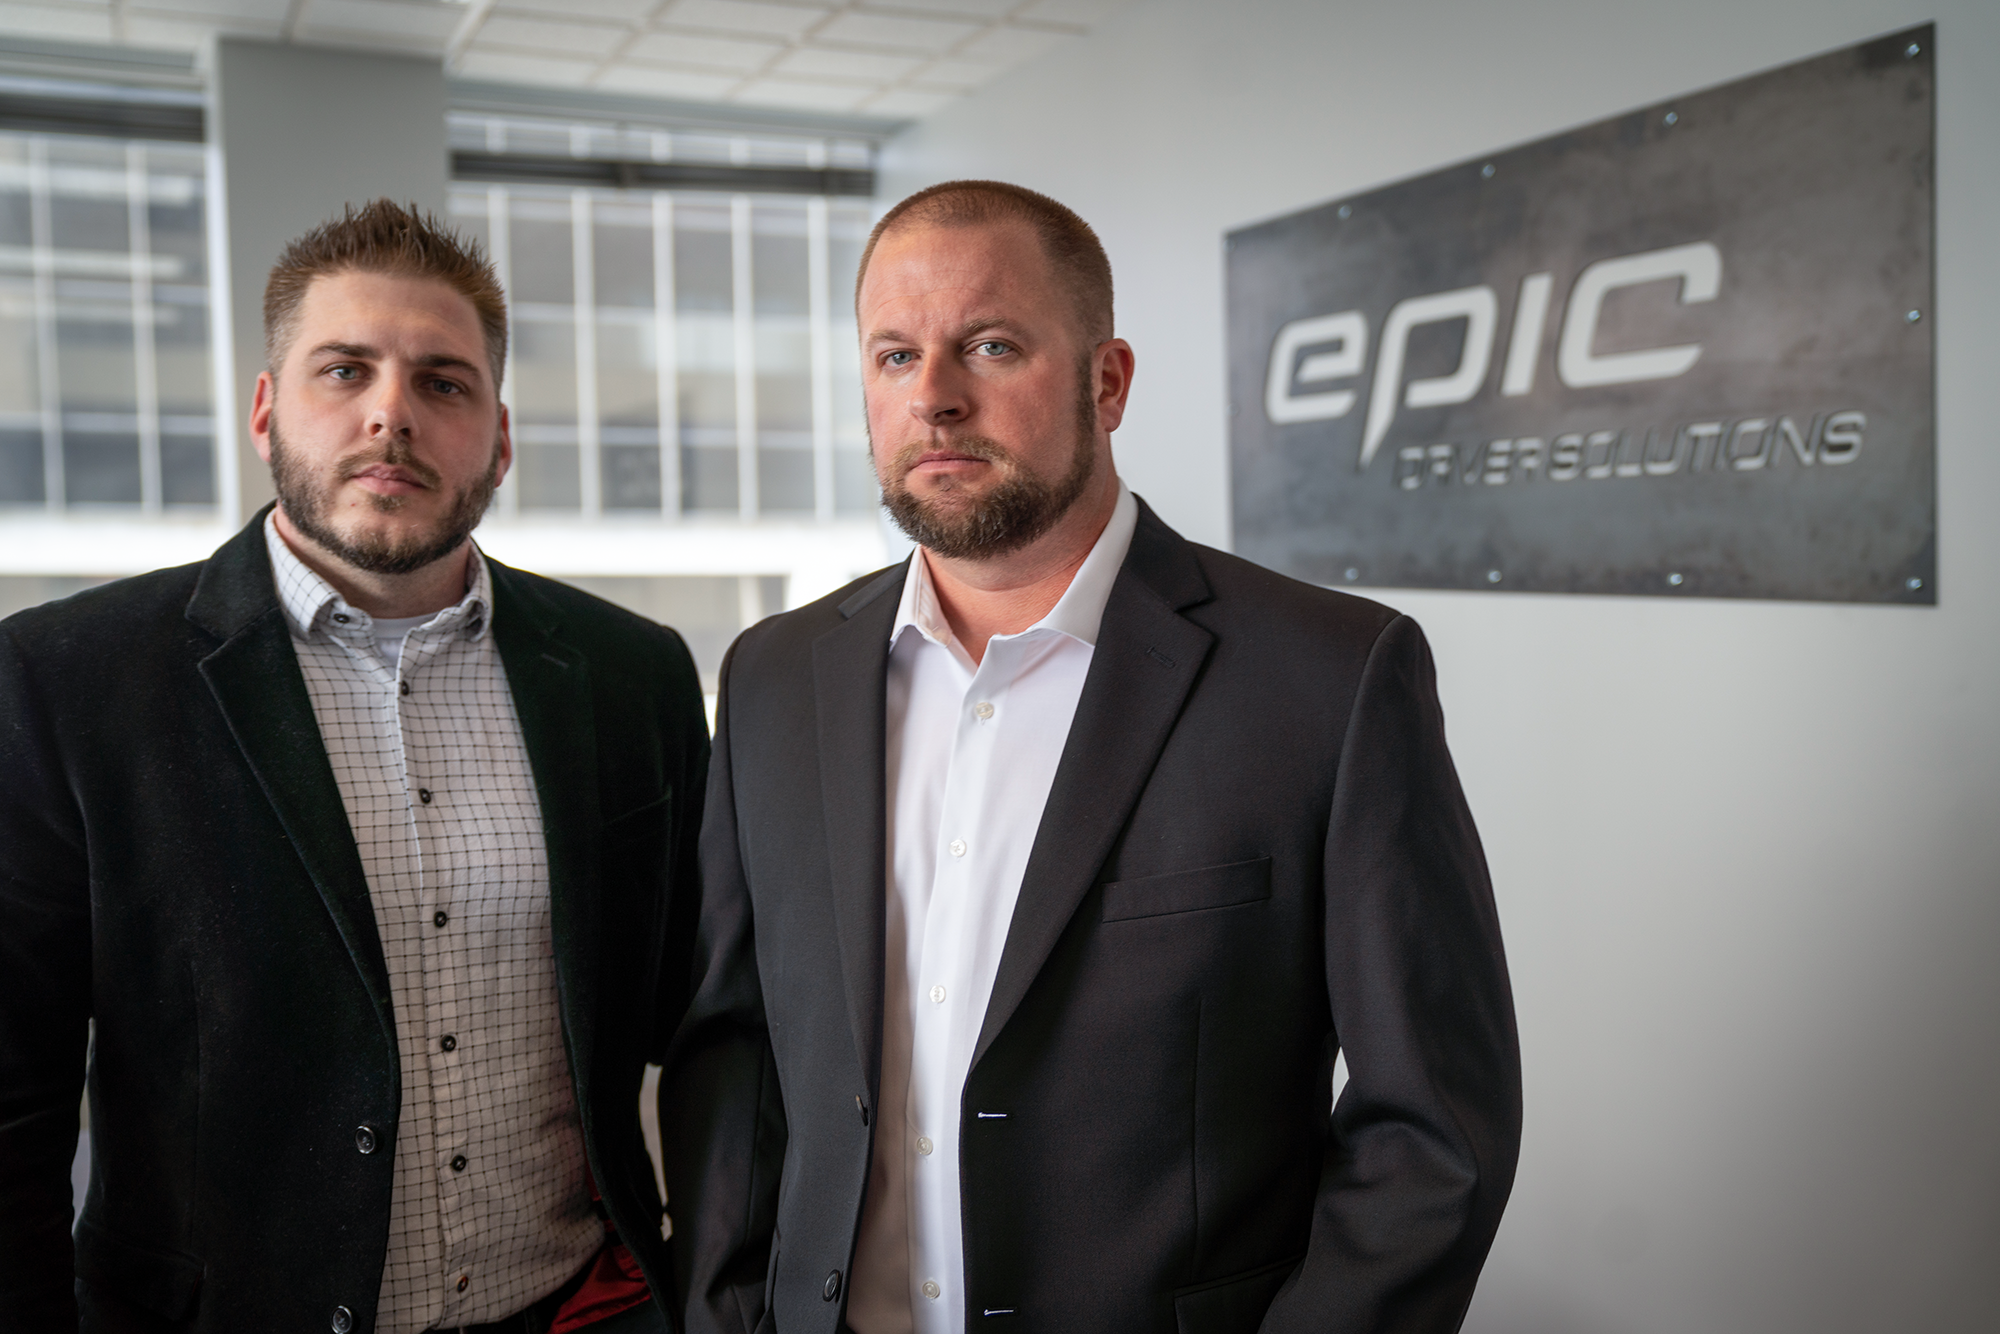 Brandon Foster President of Epic Drivers Announces High-End Truck Driver Placement Services